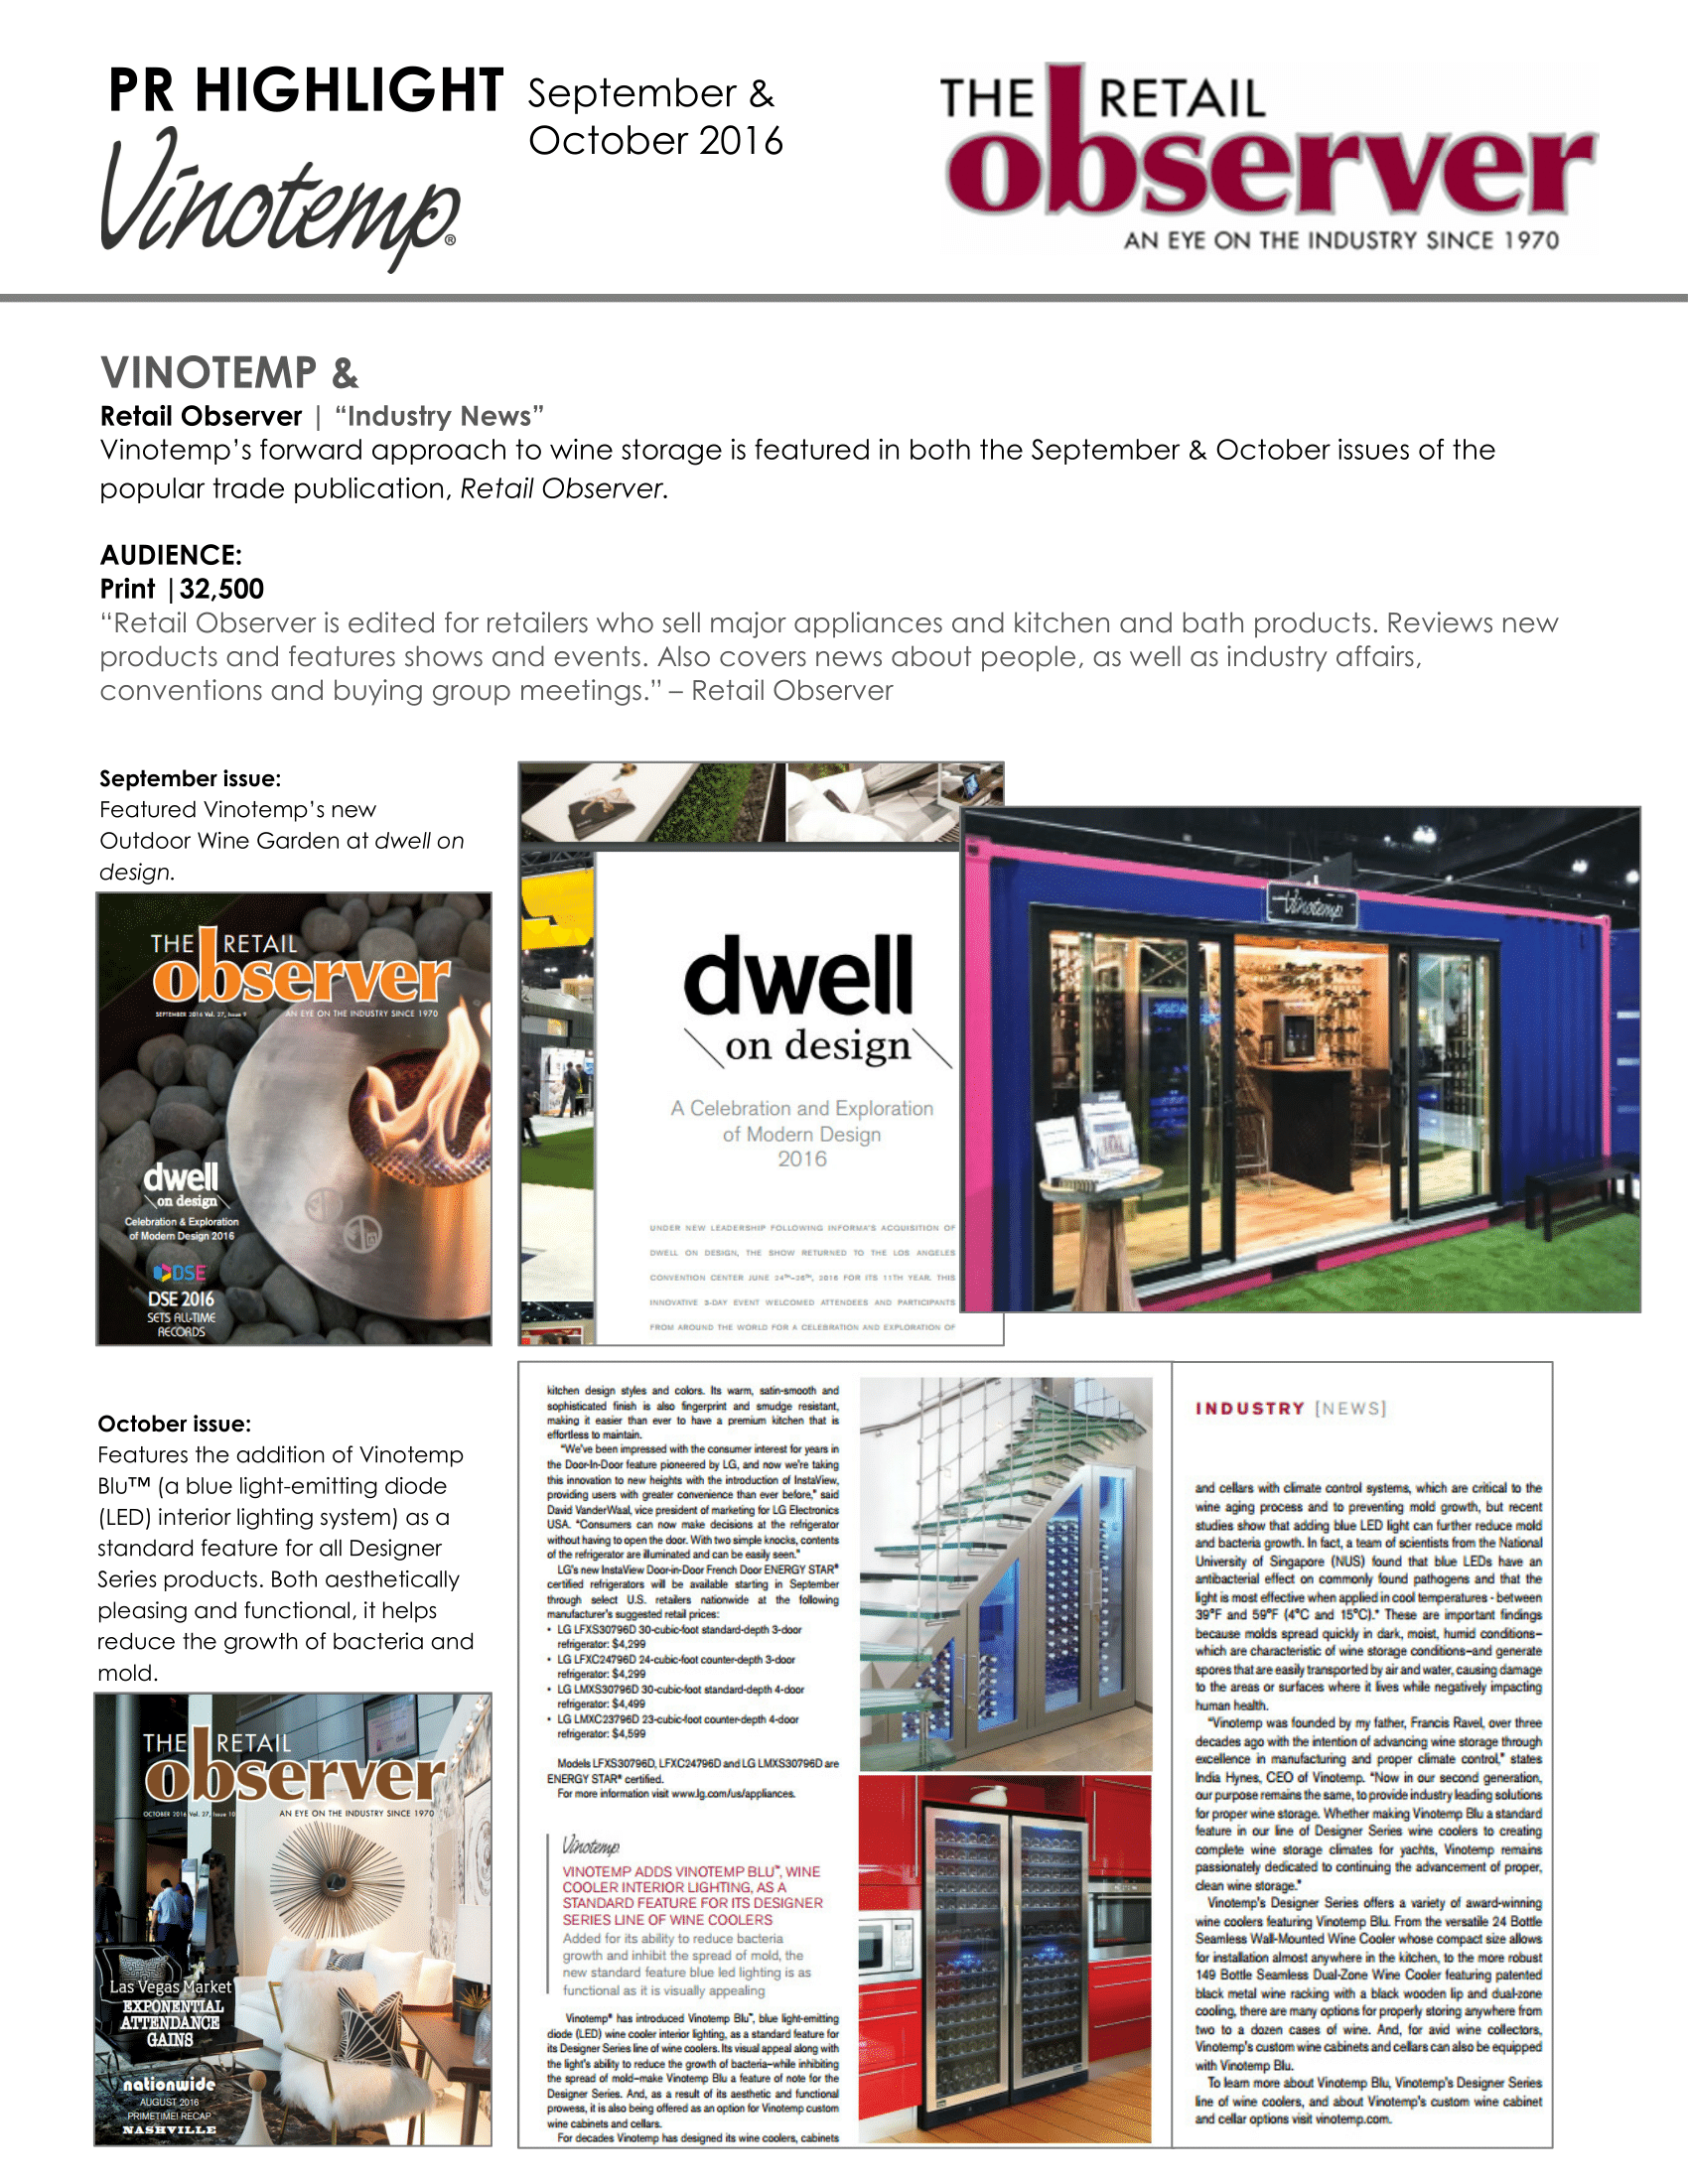 Vinotemp's Wine Garden and VinotempBlu Featured in The Retail Observer